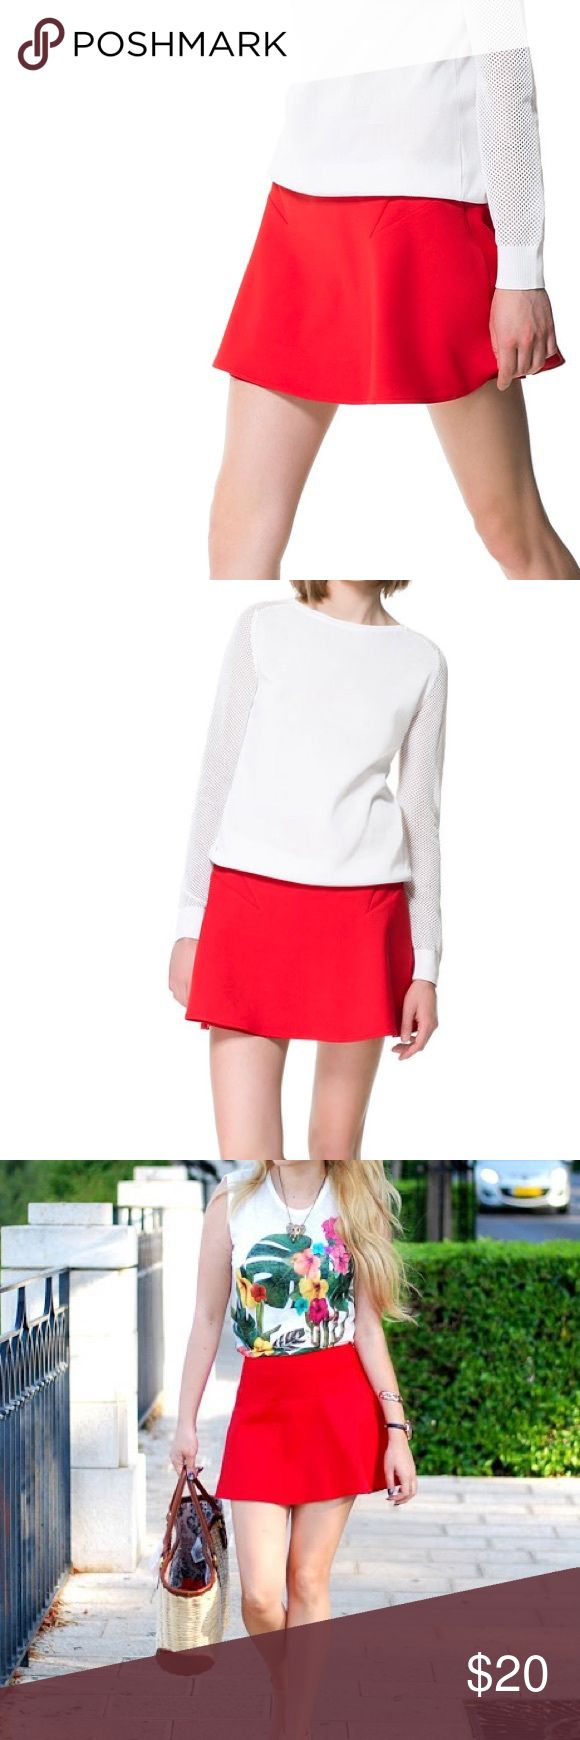 ZARA chic red double cloth mini skirt ZARA red double cloth mini skirt. Super cute for summer. Dress it up for a night out or pair with a tee and sandals for the day! Zara Skirts Mini